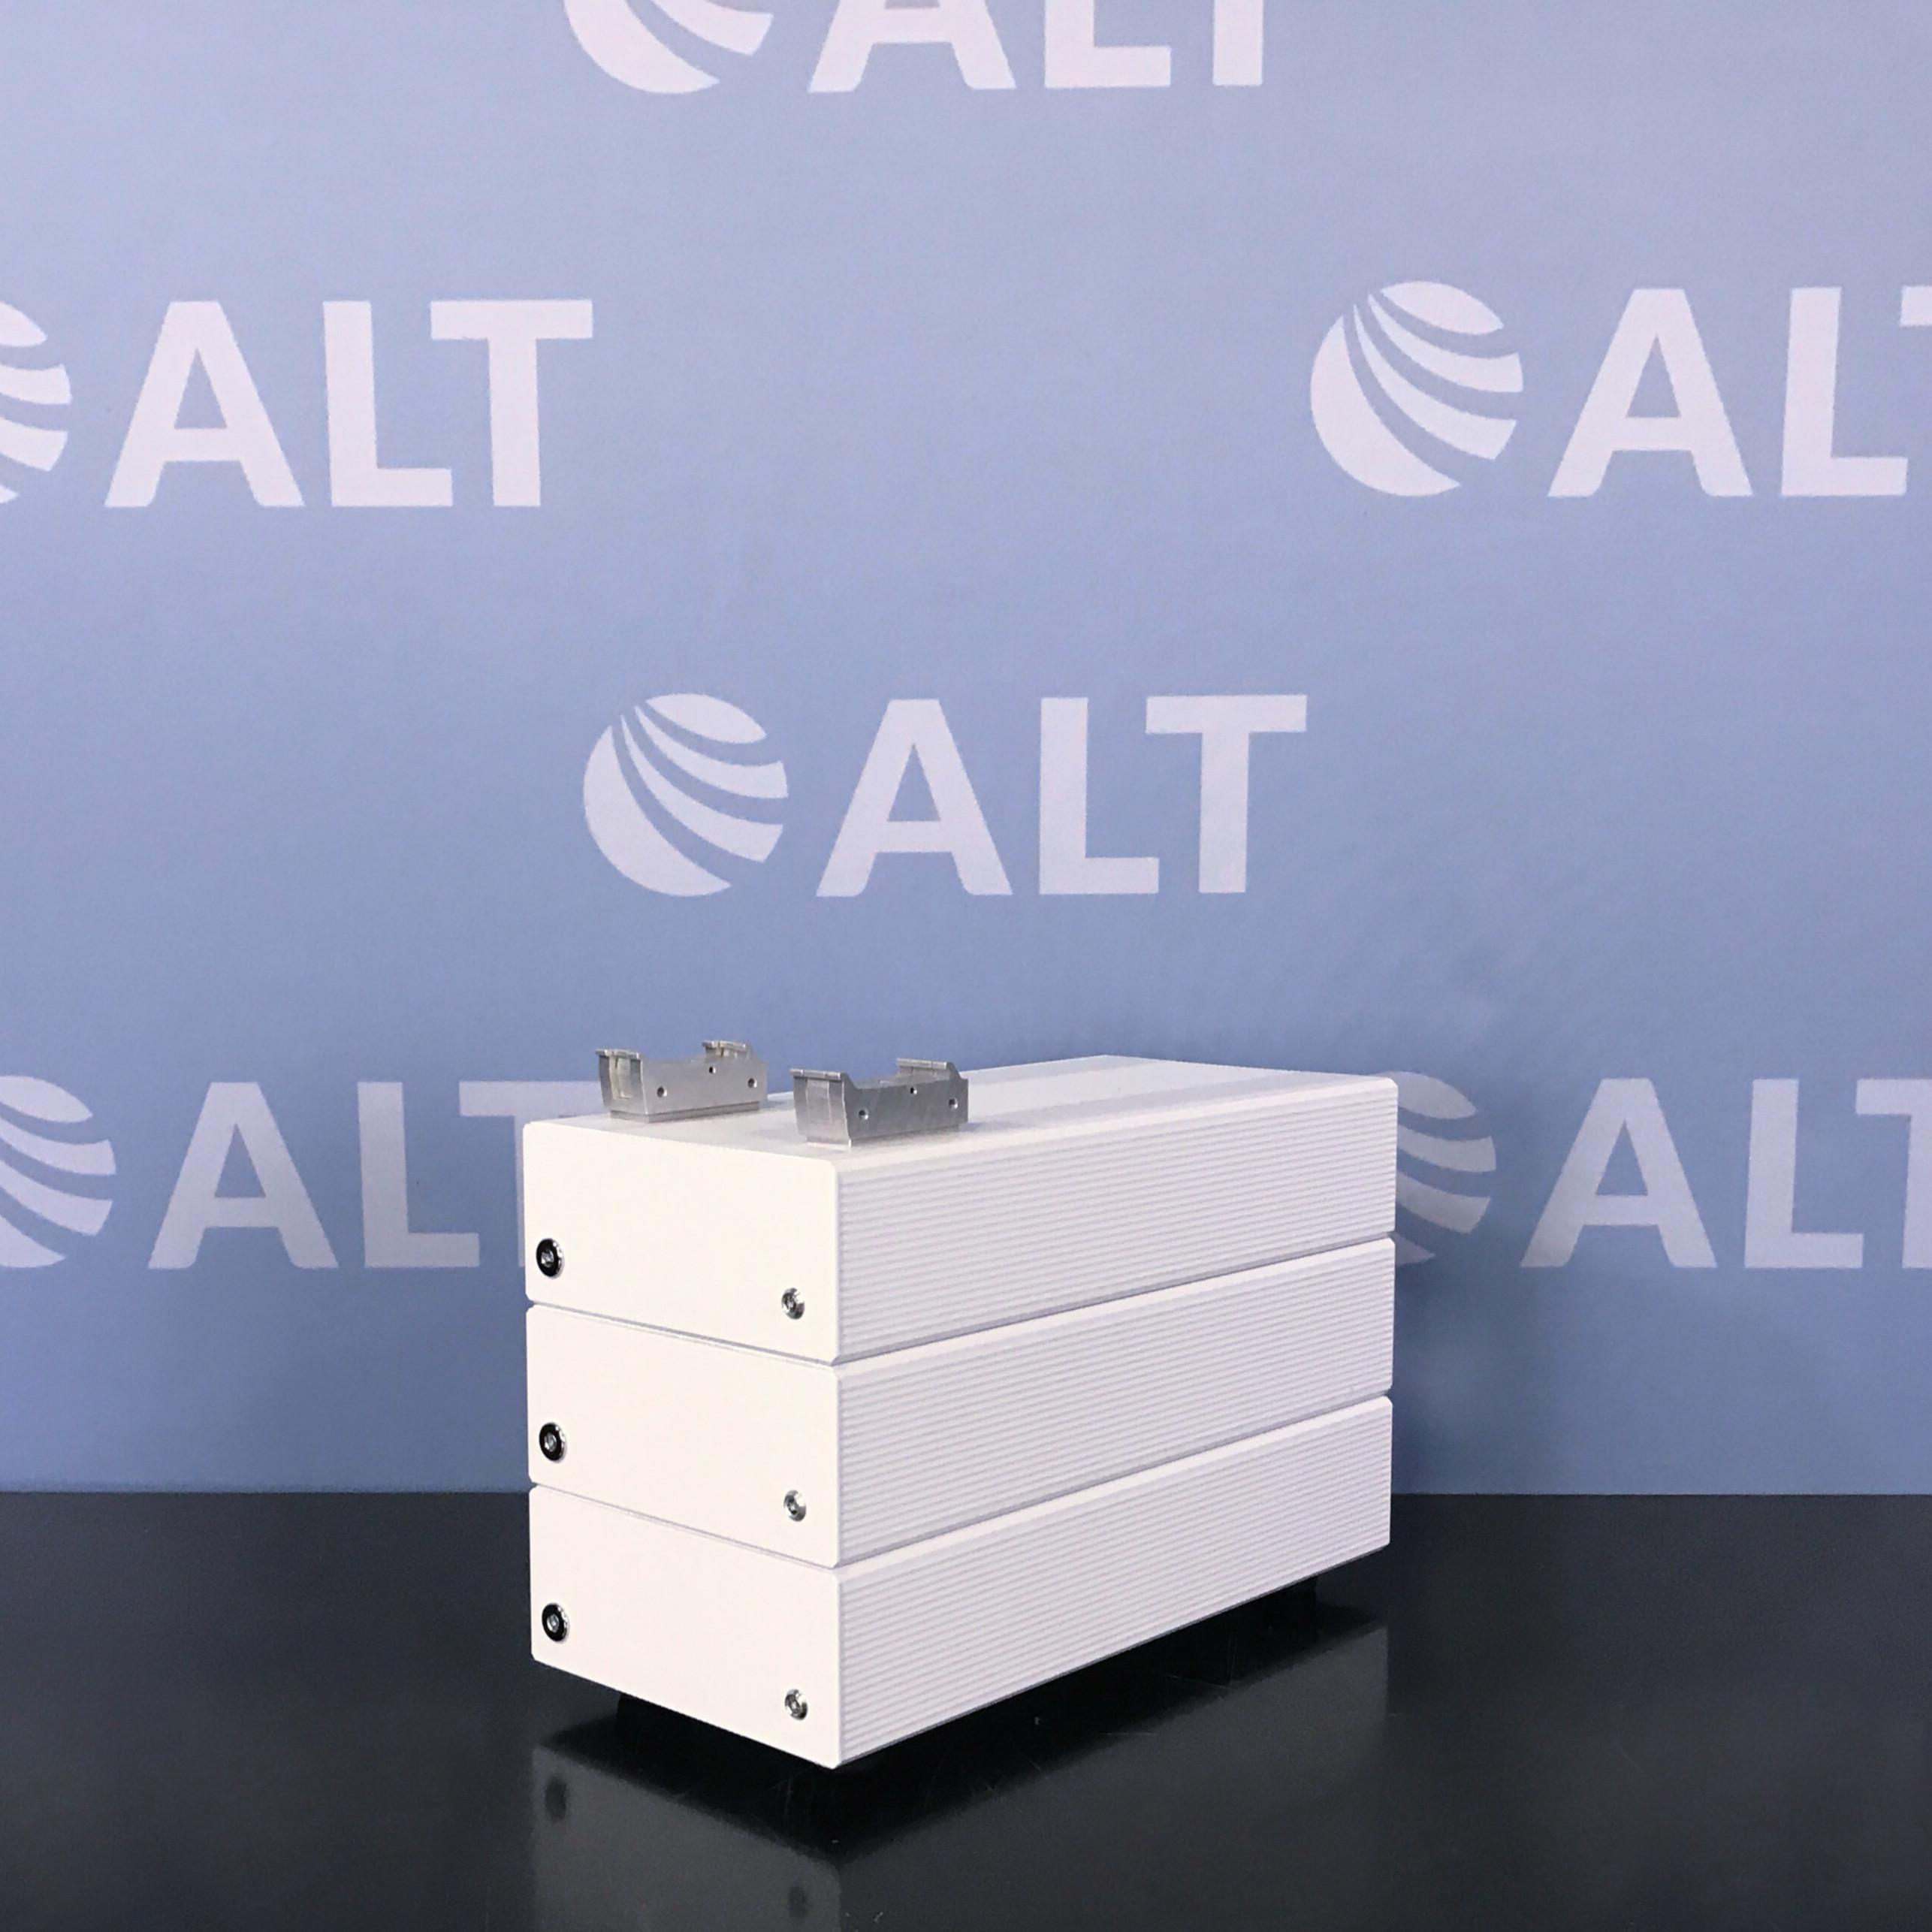 Agilent Technologies G4270-60004 PAL Stack, 6 DW, Cooled Image